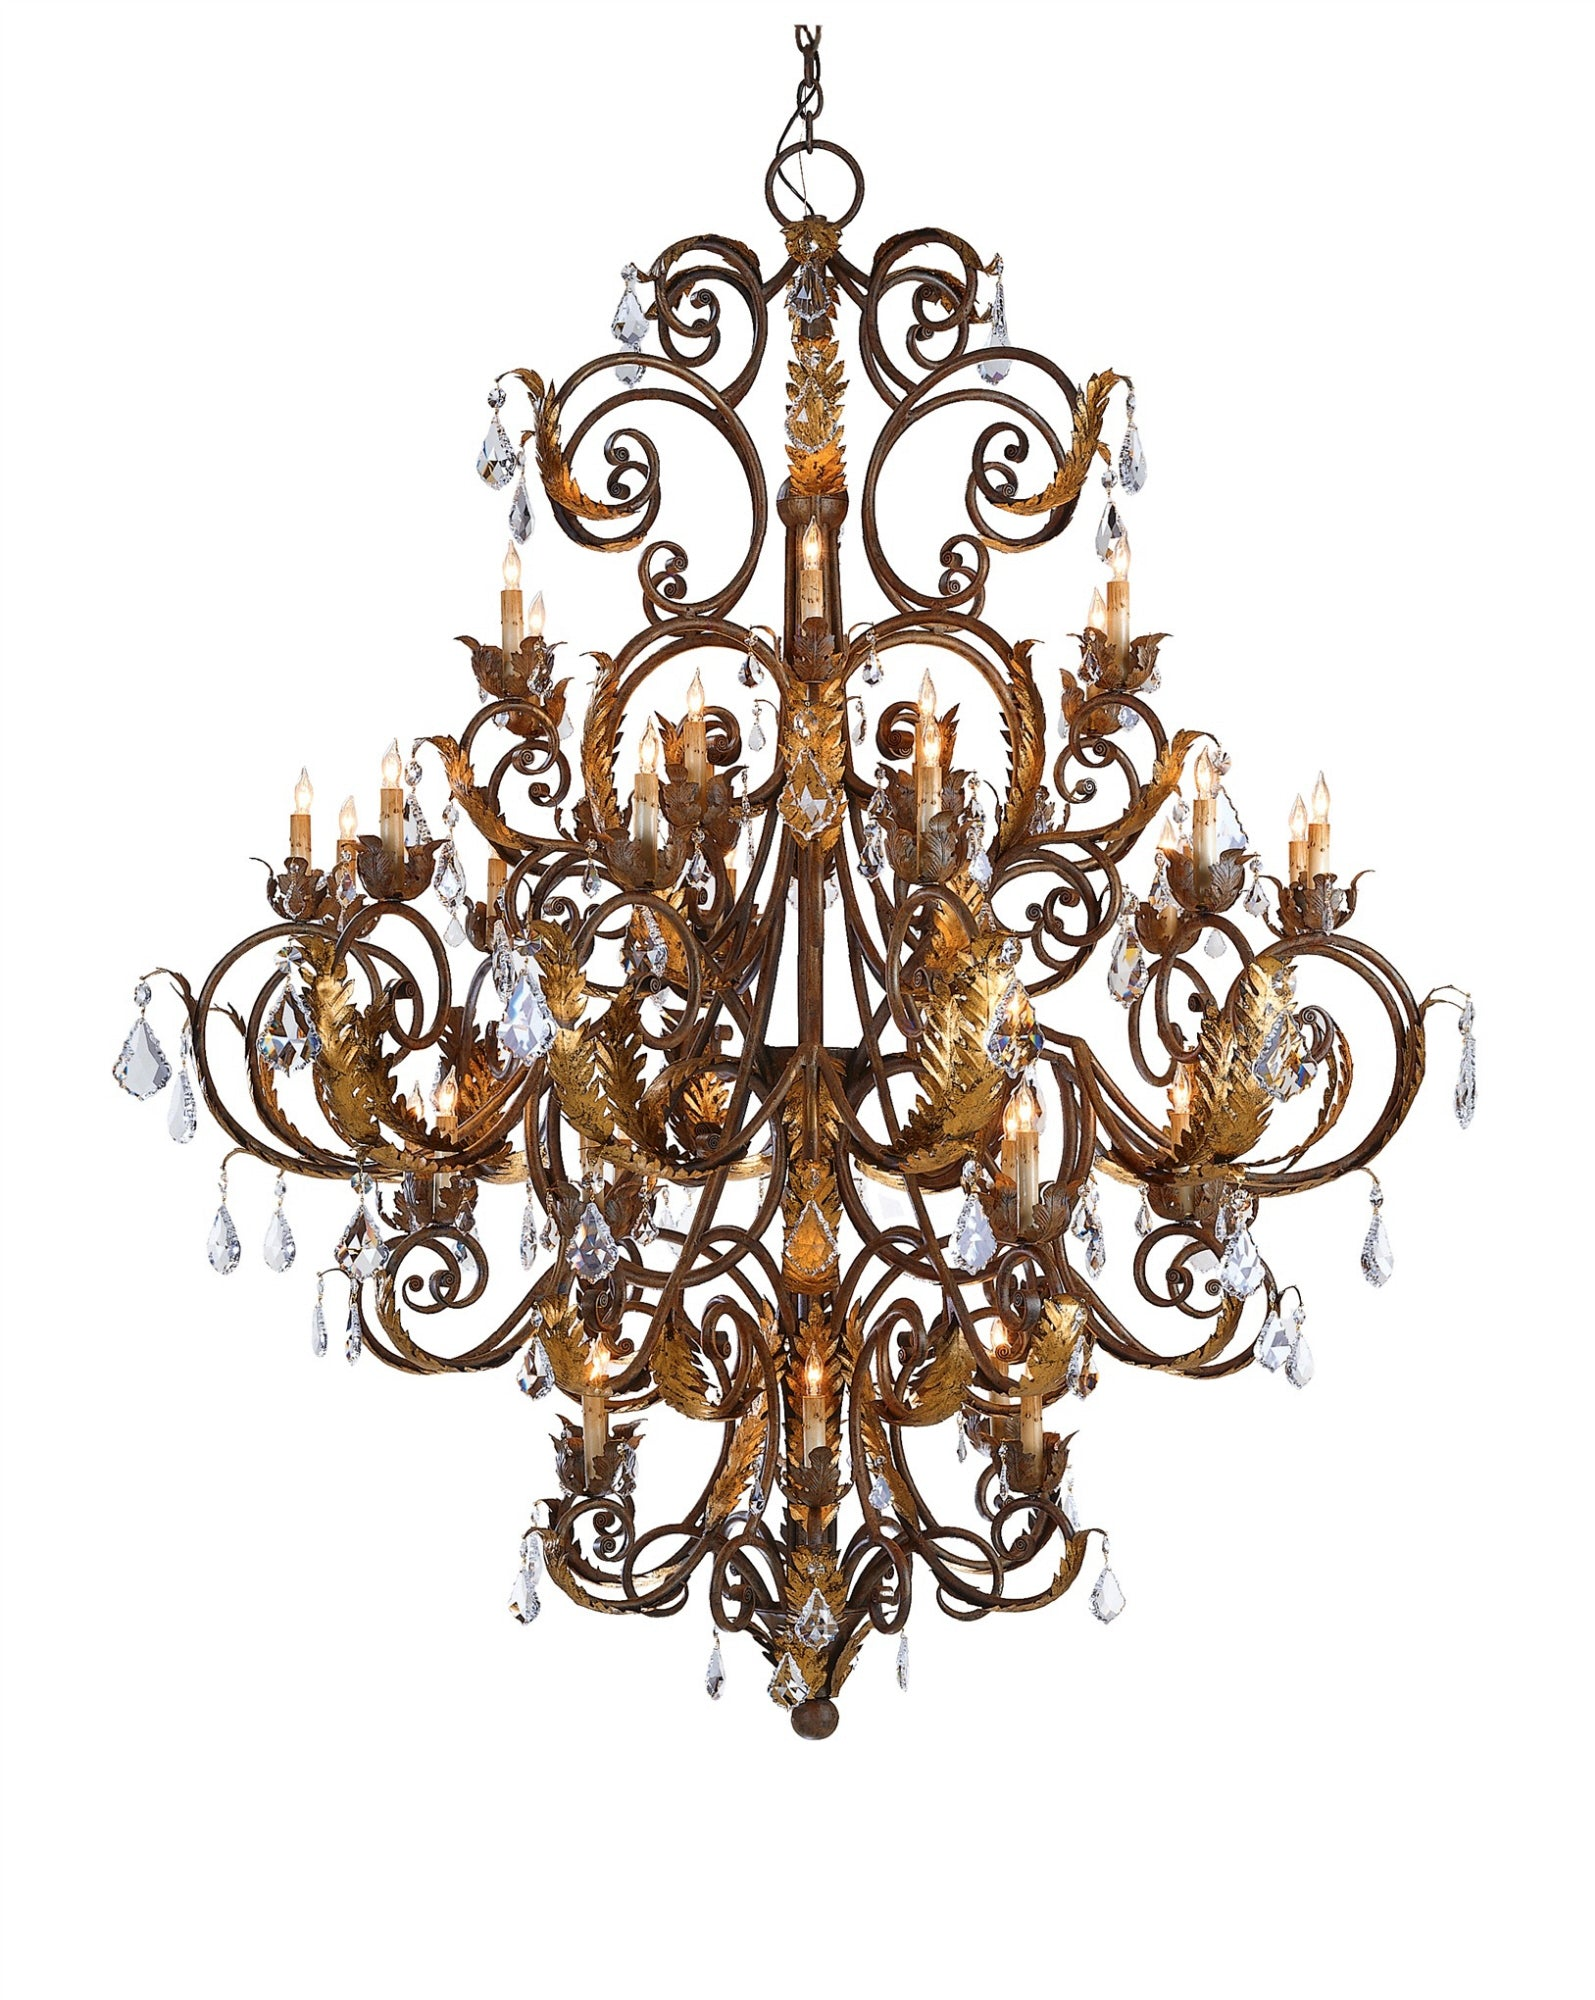 Currey and Company Innsbruck Chandelier 9530 - LOVECUP